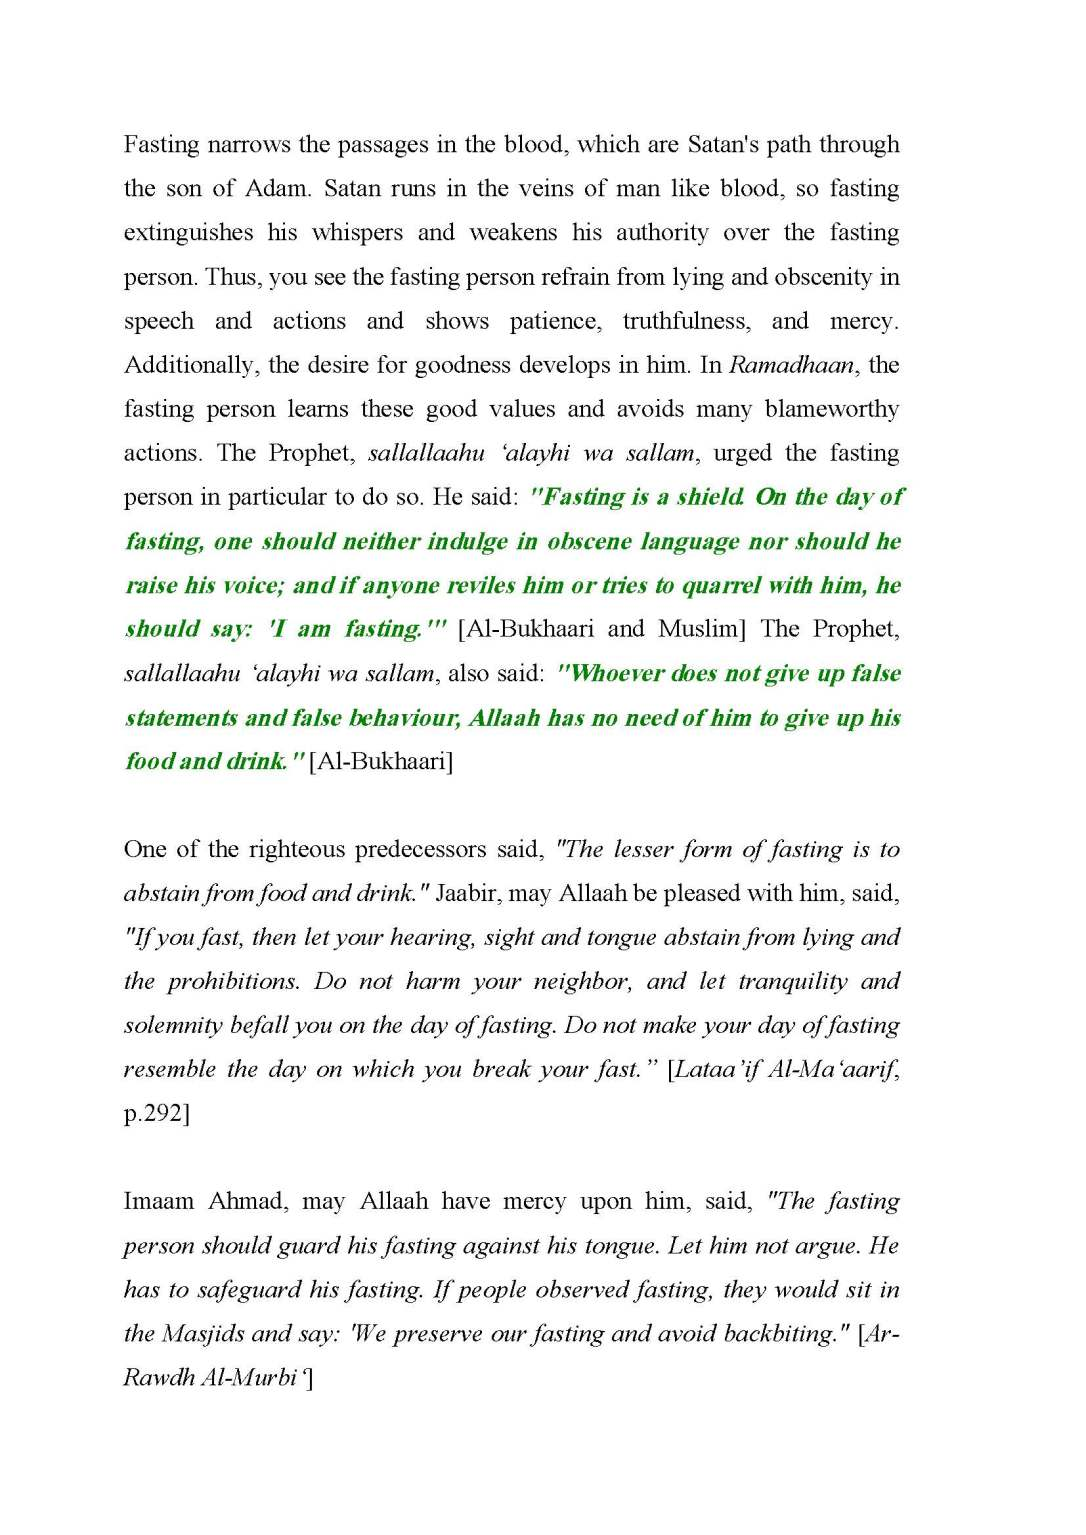 Benefits_and_Secrets_of_Fasting_Page_23